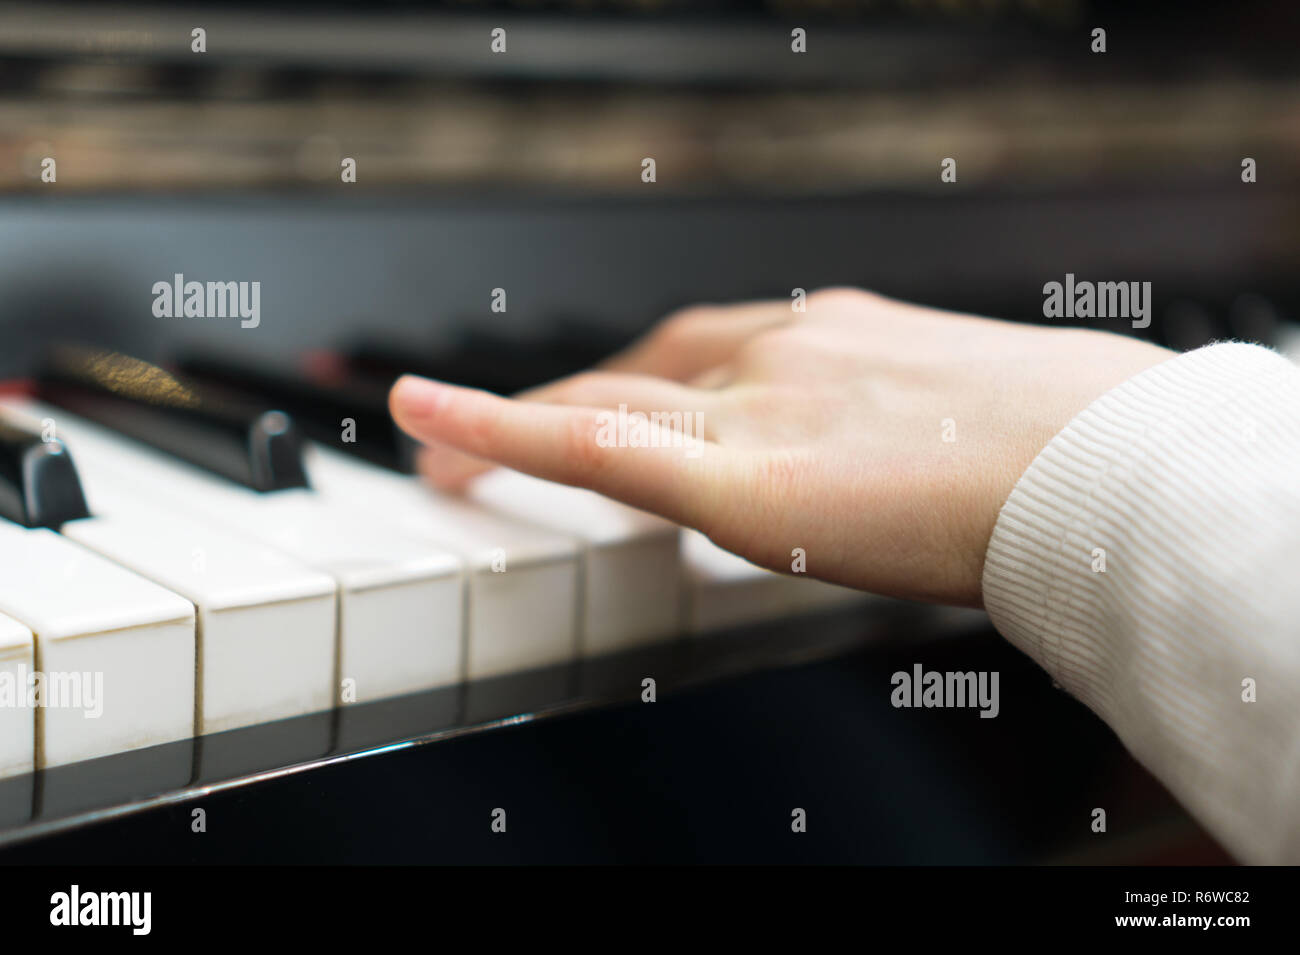 Child learning to play the piano. - Stock Image